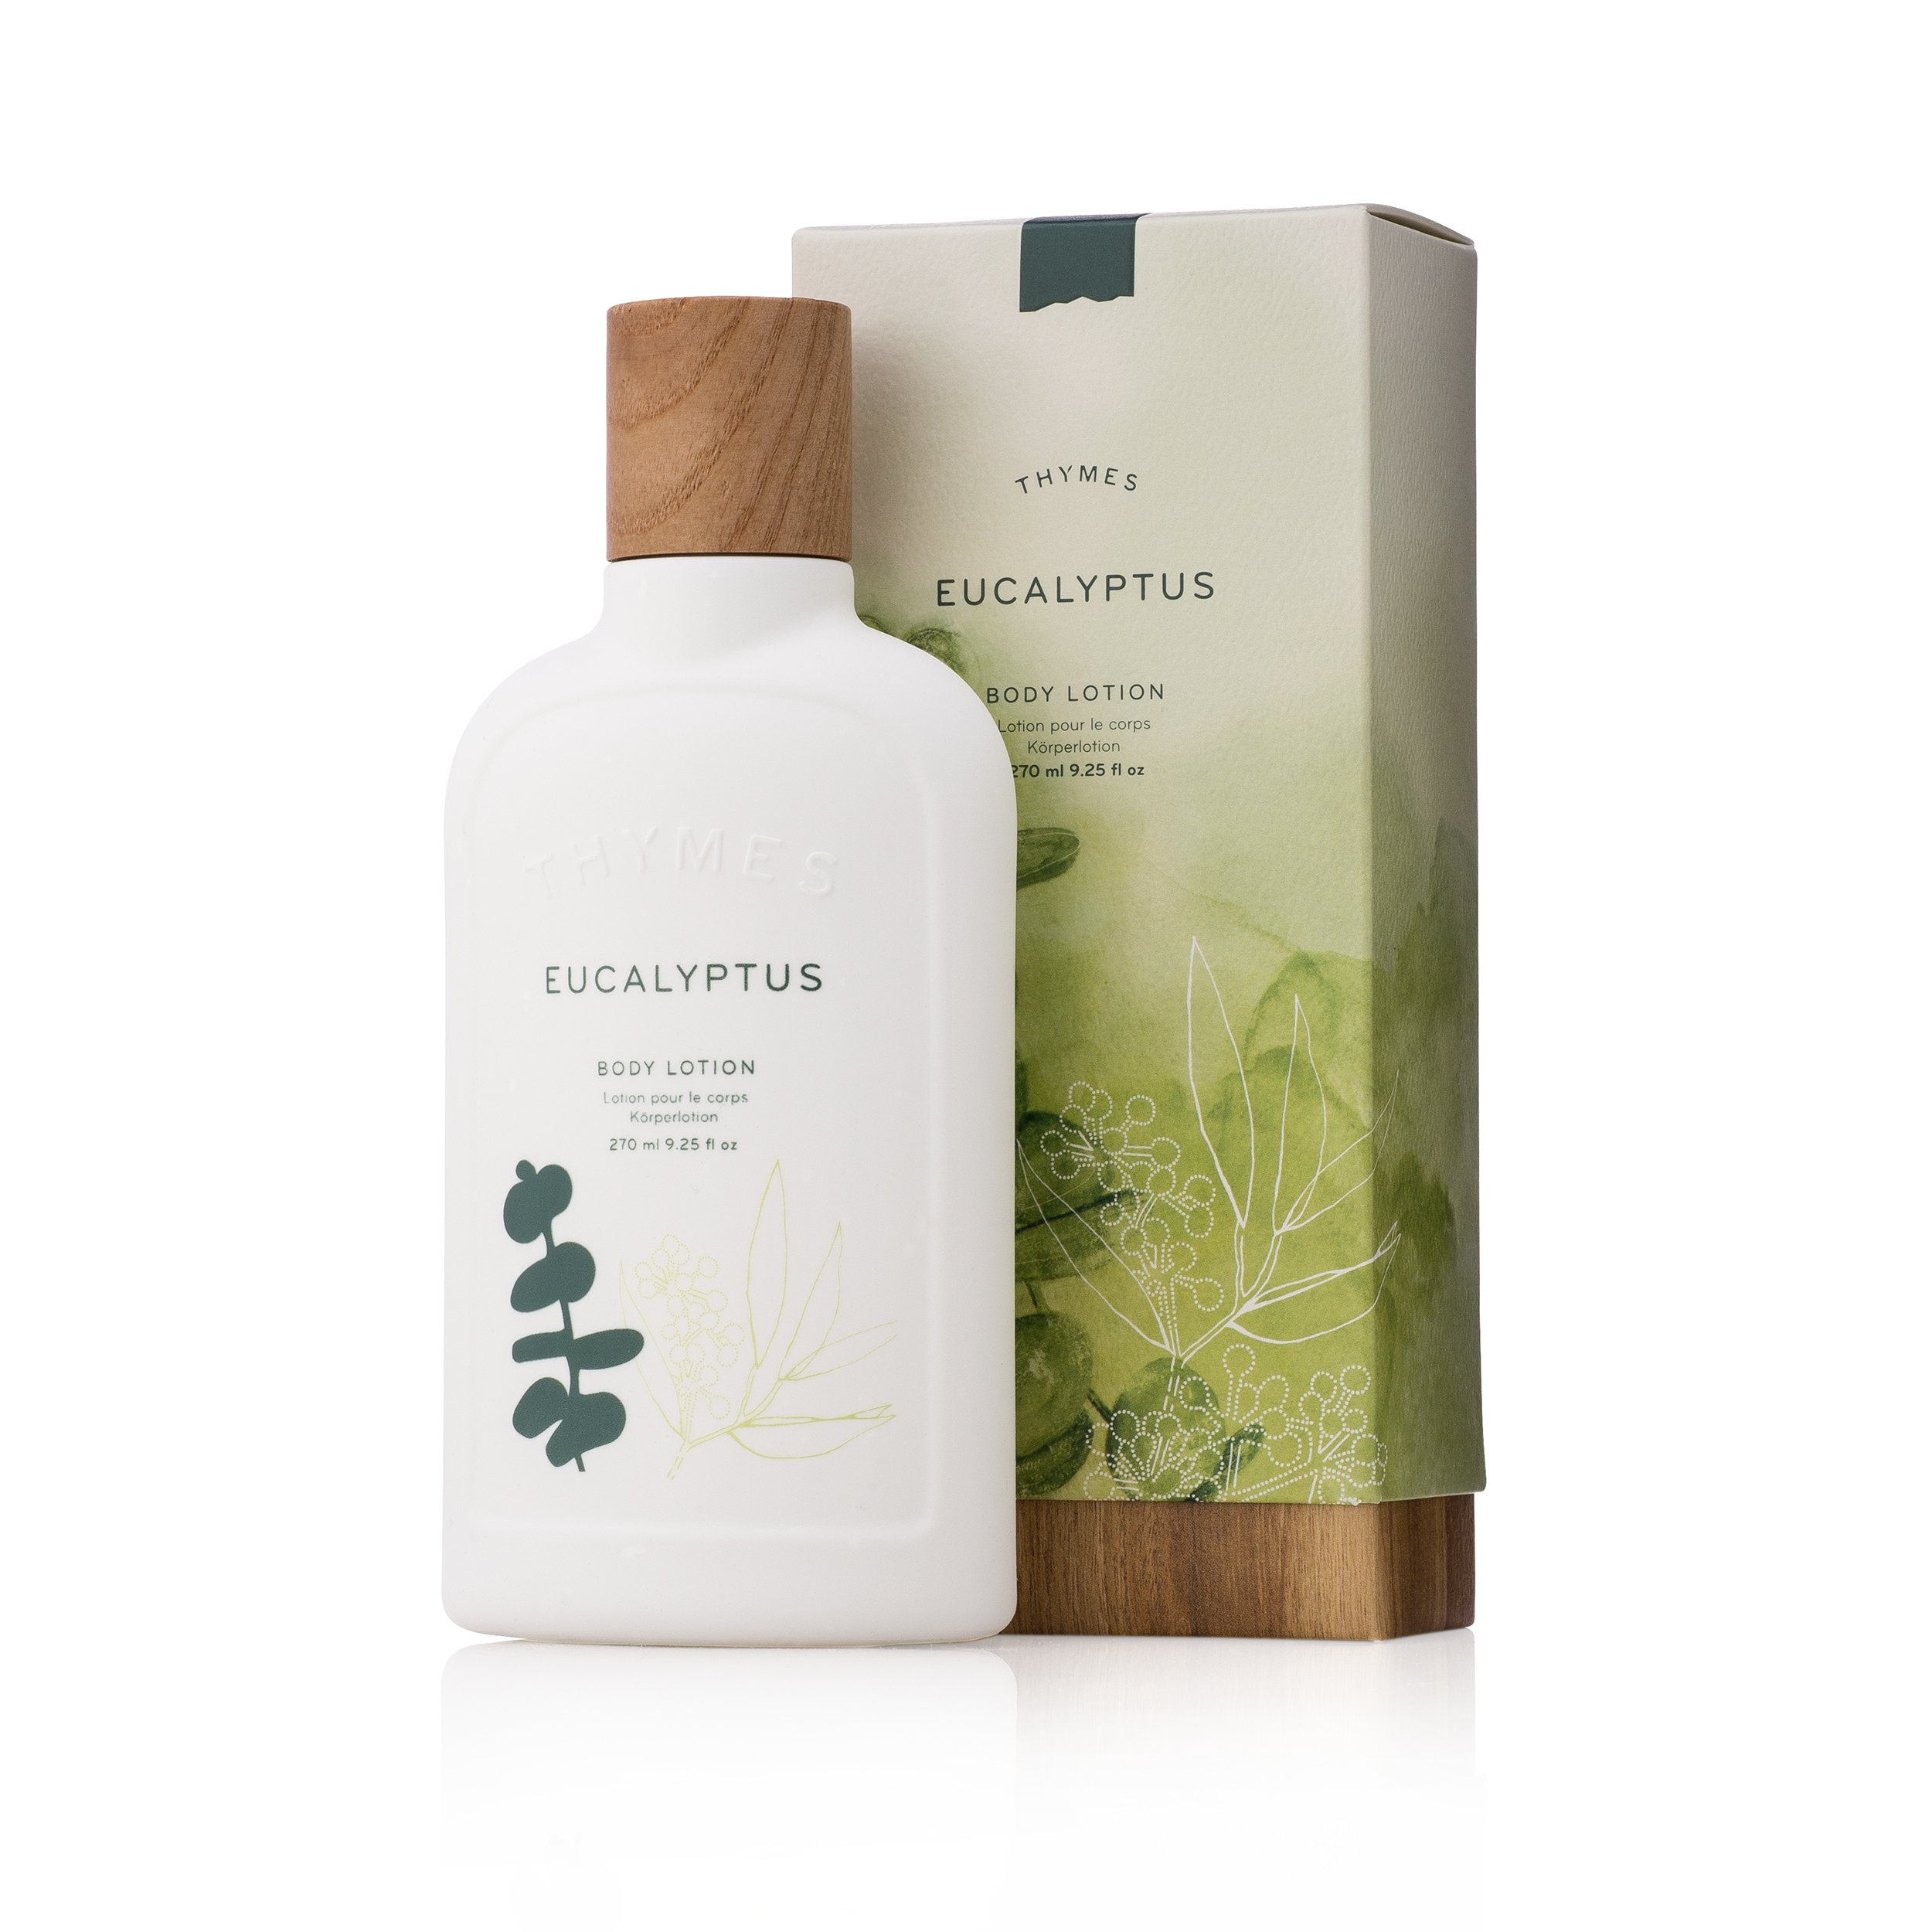 Thymes - Eucalyptus Body Lotion - With Moisturizing Shea Butter and Rejuvenating Eucalyptus Oil & Aloe Vera - 9.25 oz by Thymes